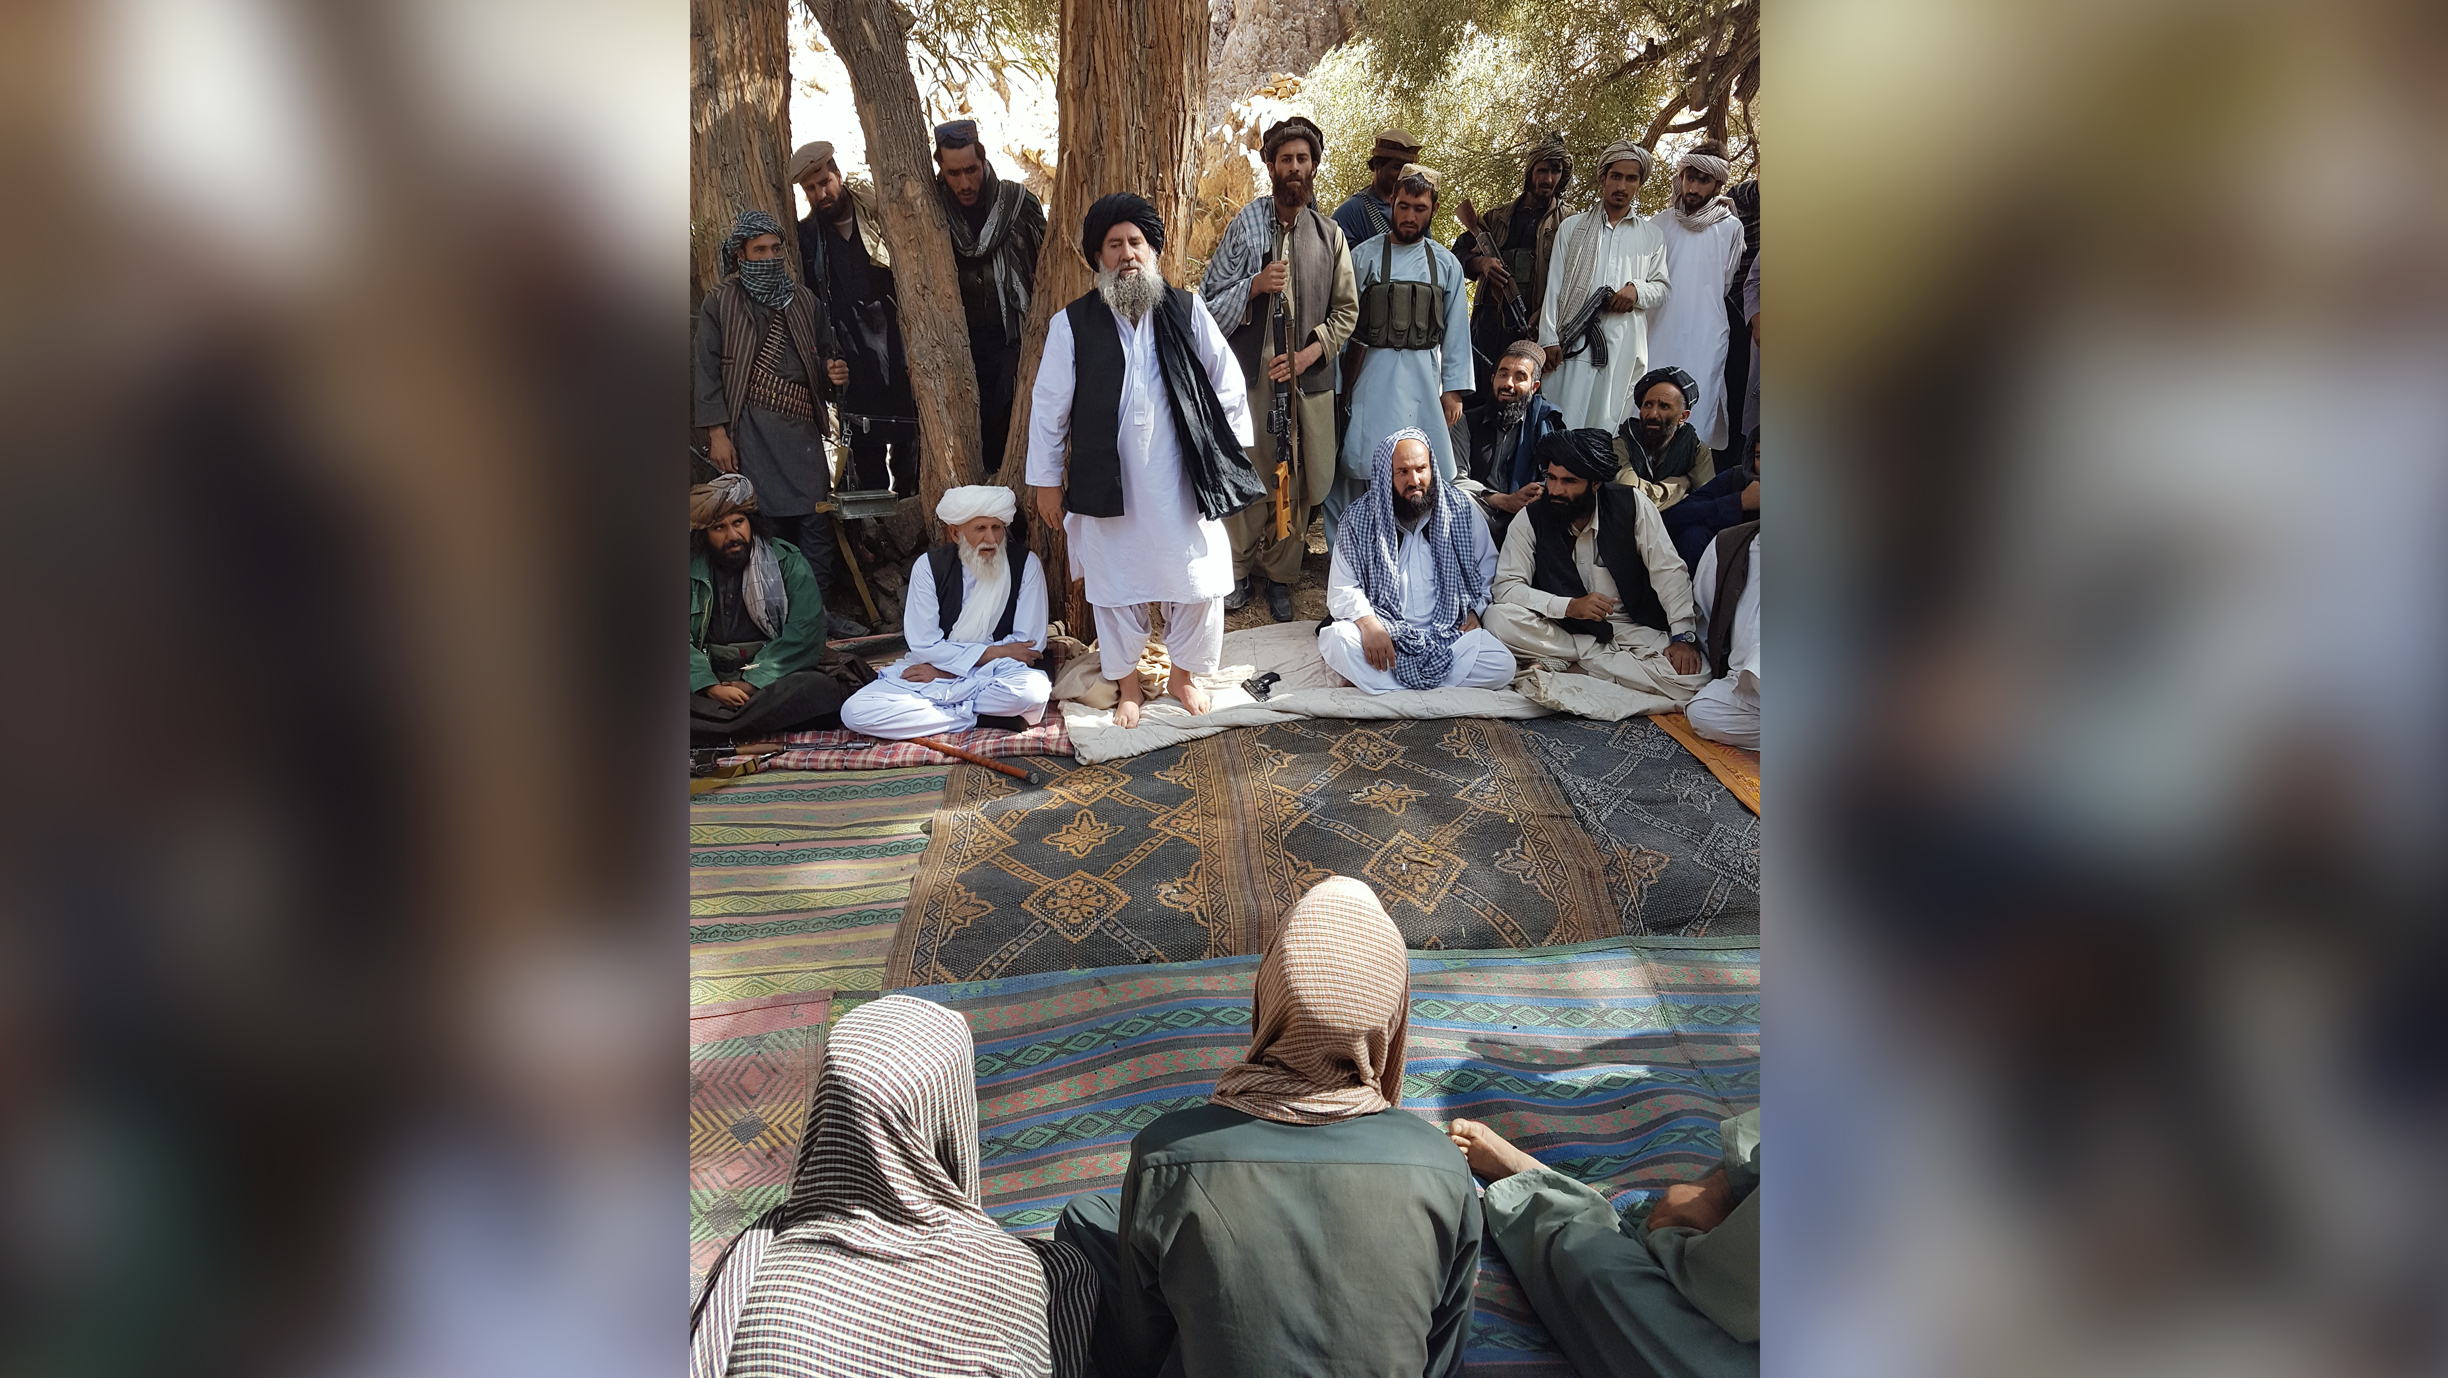 Three captured would-be suicide bombers sit in front of Mullah Manan Niazi as he speaks to his followers in an undated photo. [Courtesy of Mullah Manan Niazi]